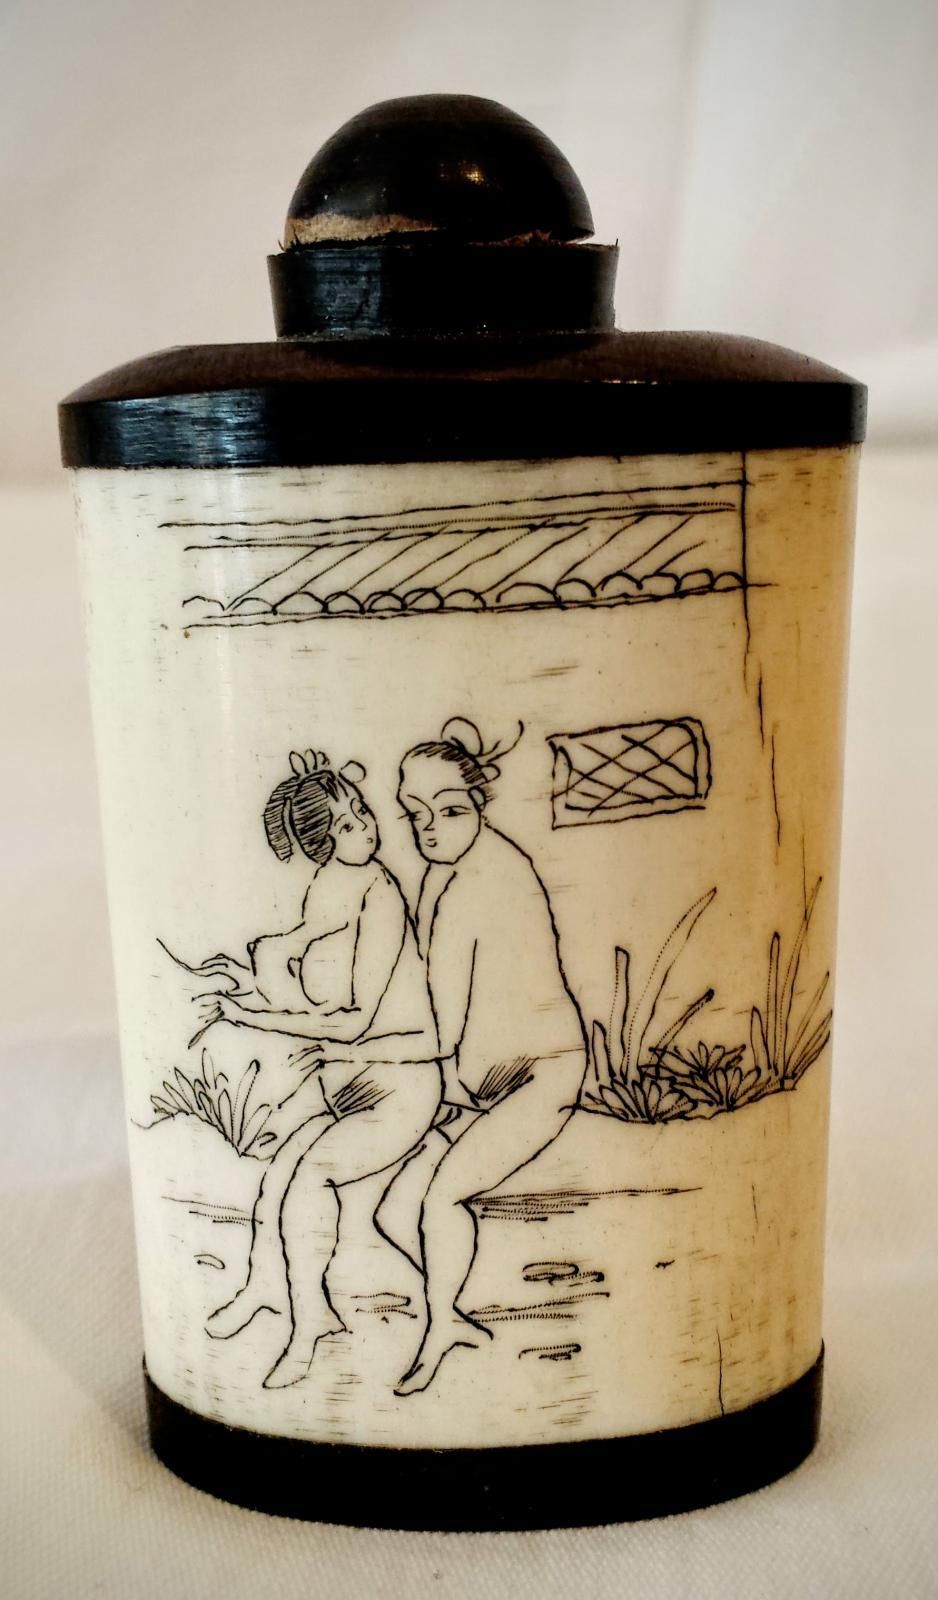 Antique japanese bone scent bottle with erotic scratch carvings and antique japanese bone scent bottle with erotic scratch carvings and symbols looking for antiques biocorpaavc Gallery